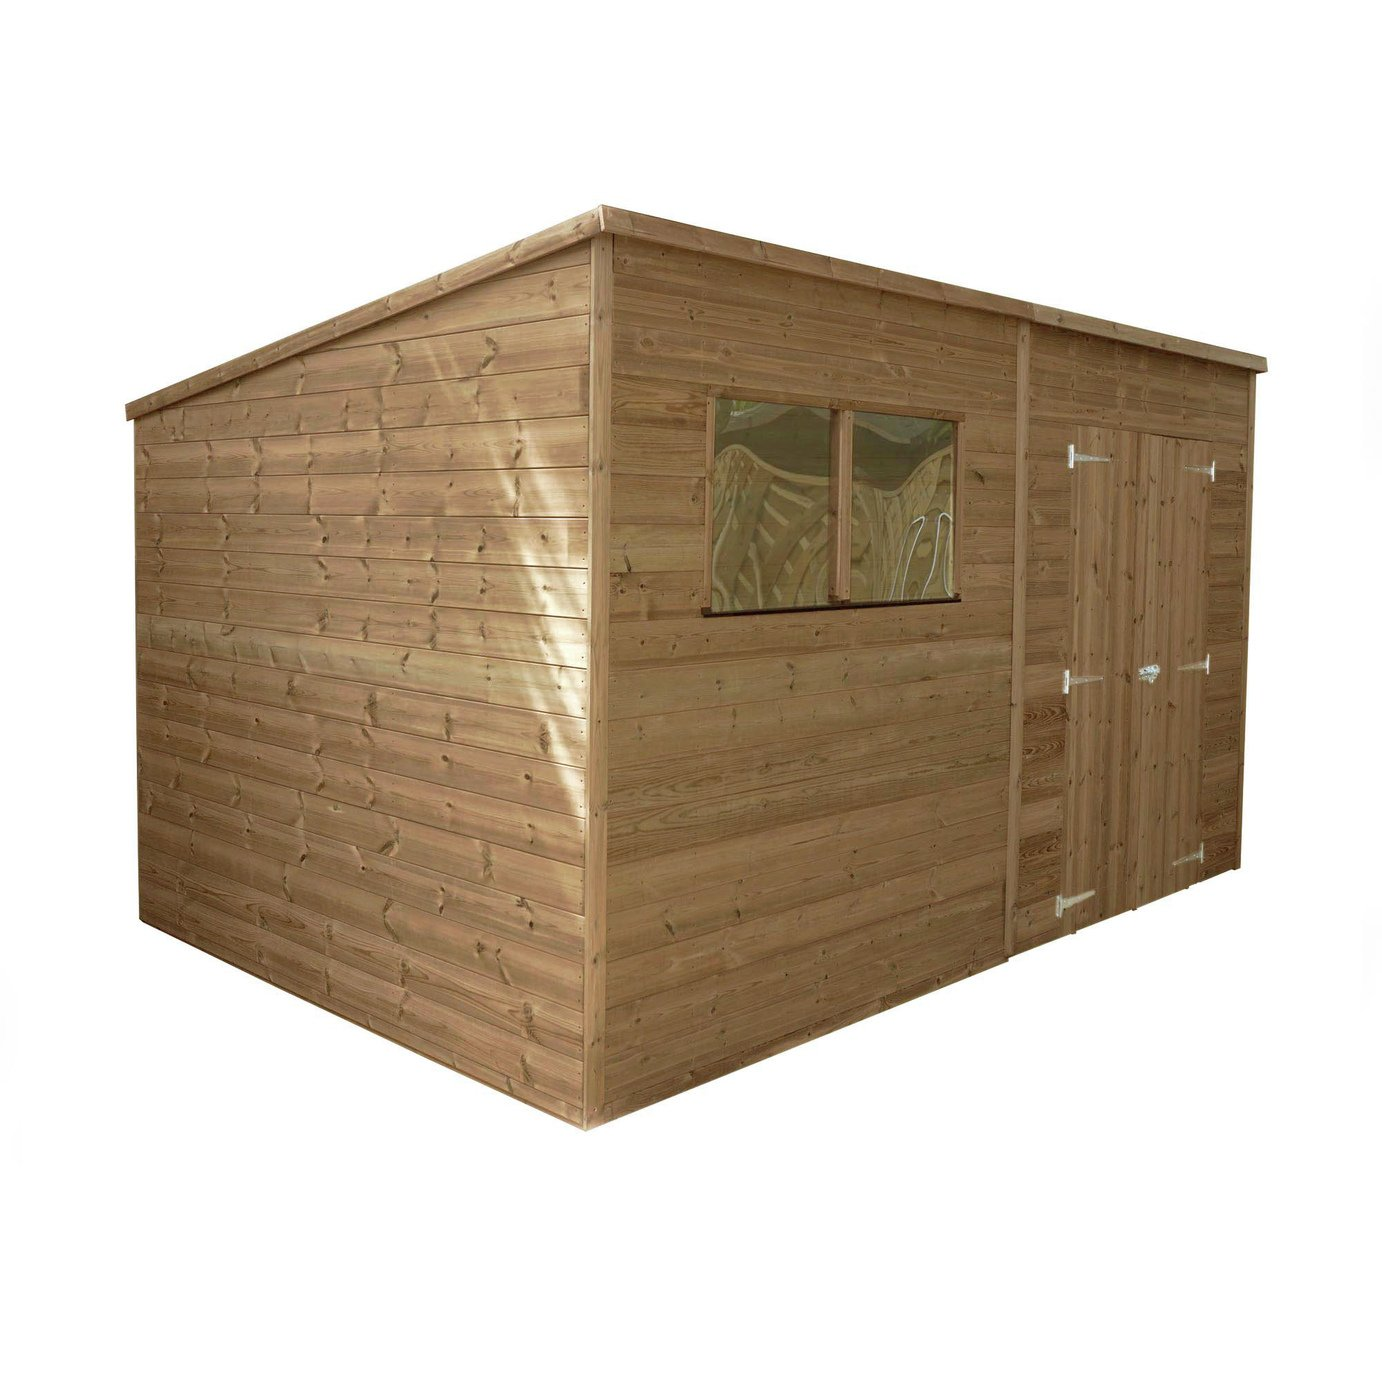 Mercia Wooden 12 x 8ft Pressure Treated Pent Shed